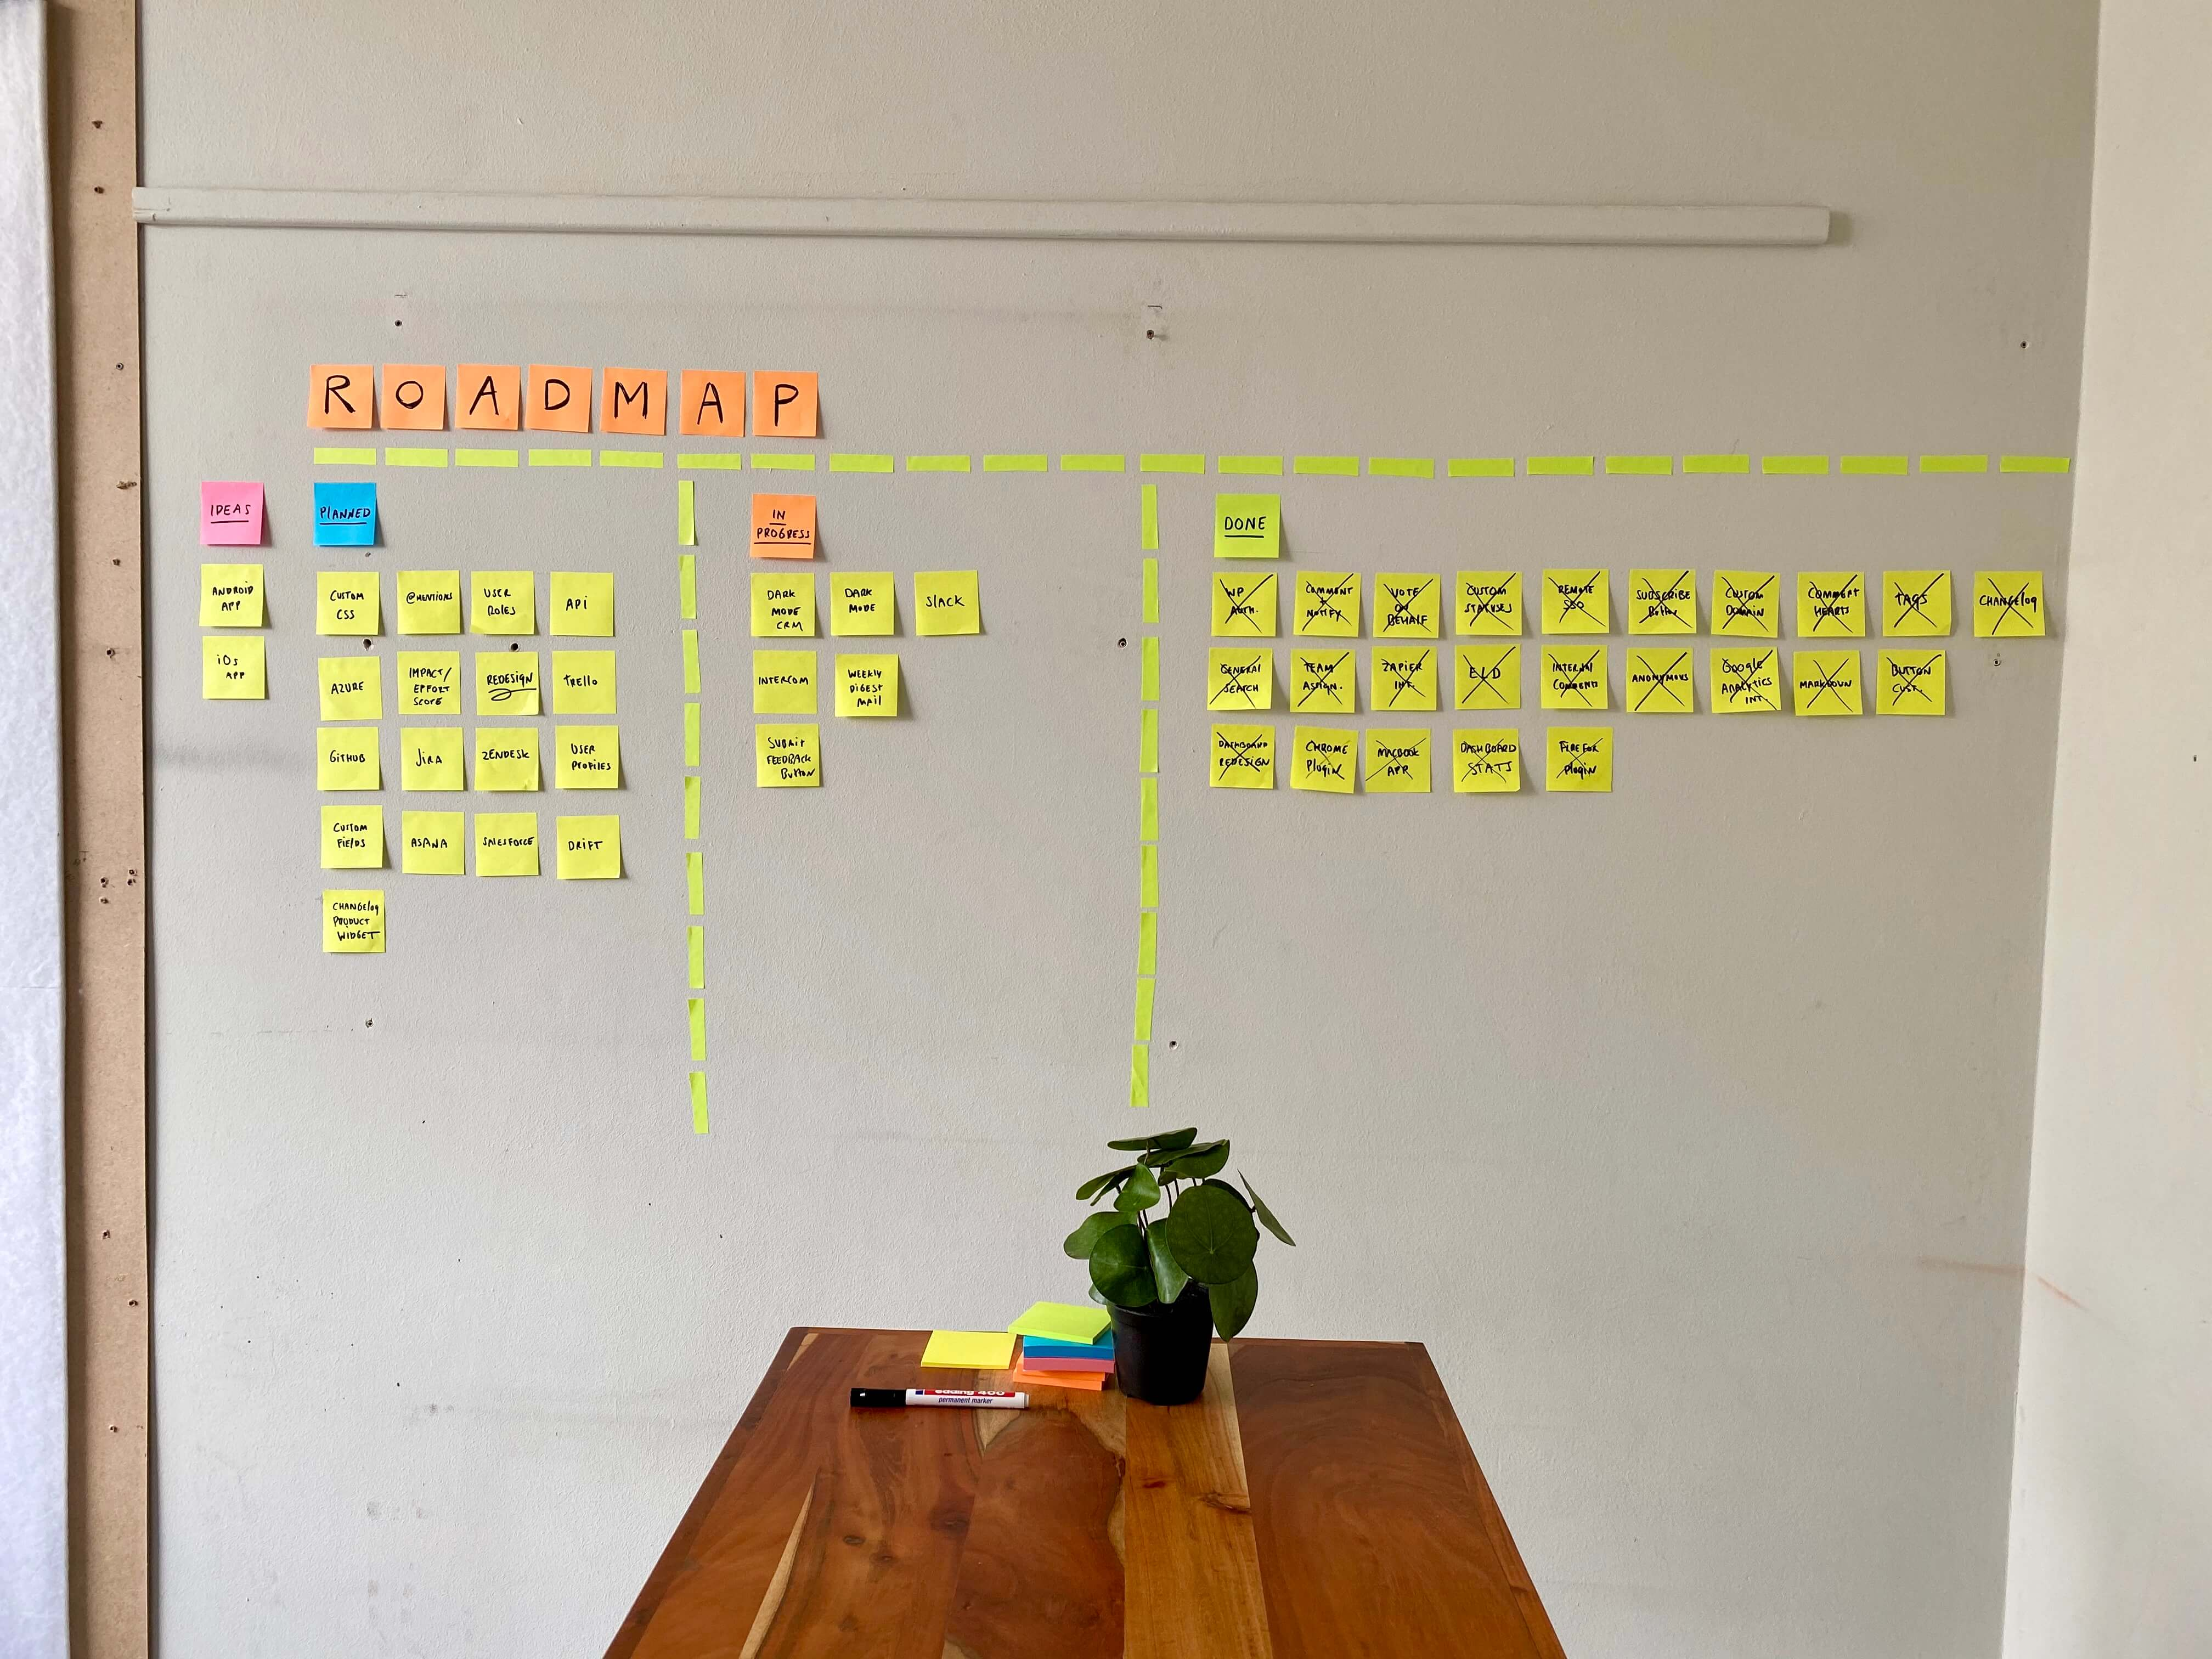 Product Roadmap on wall